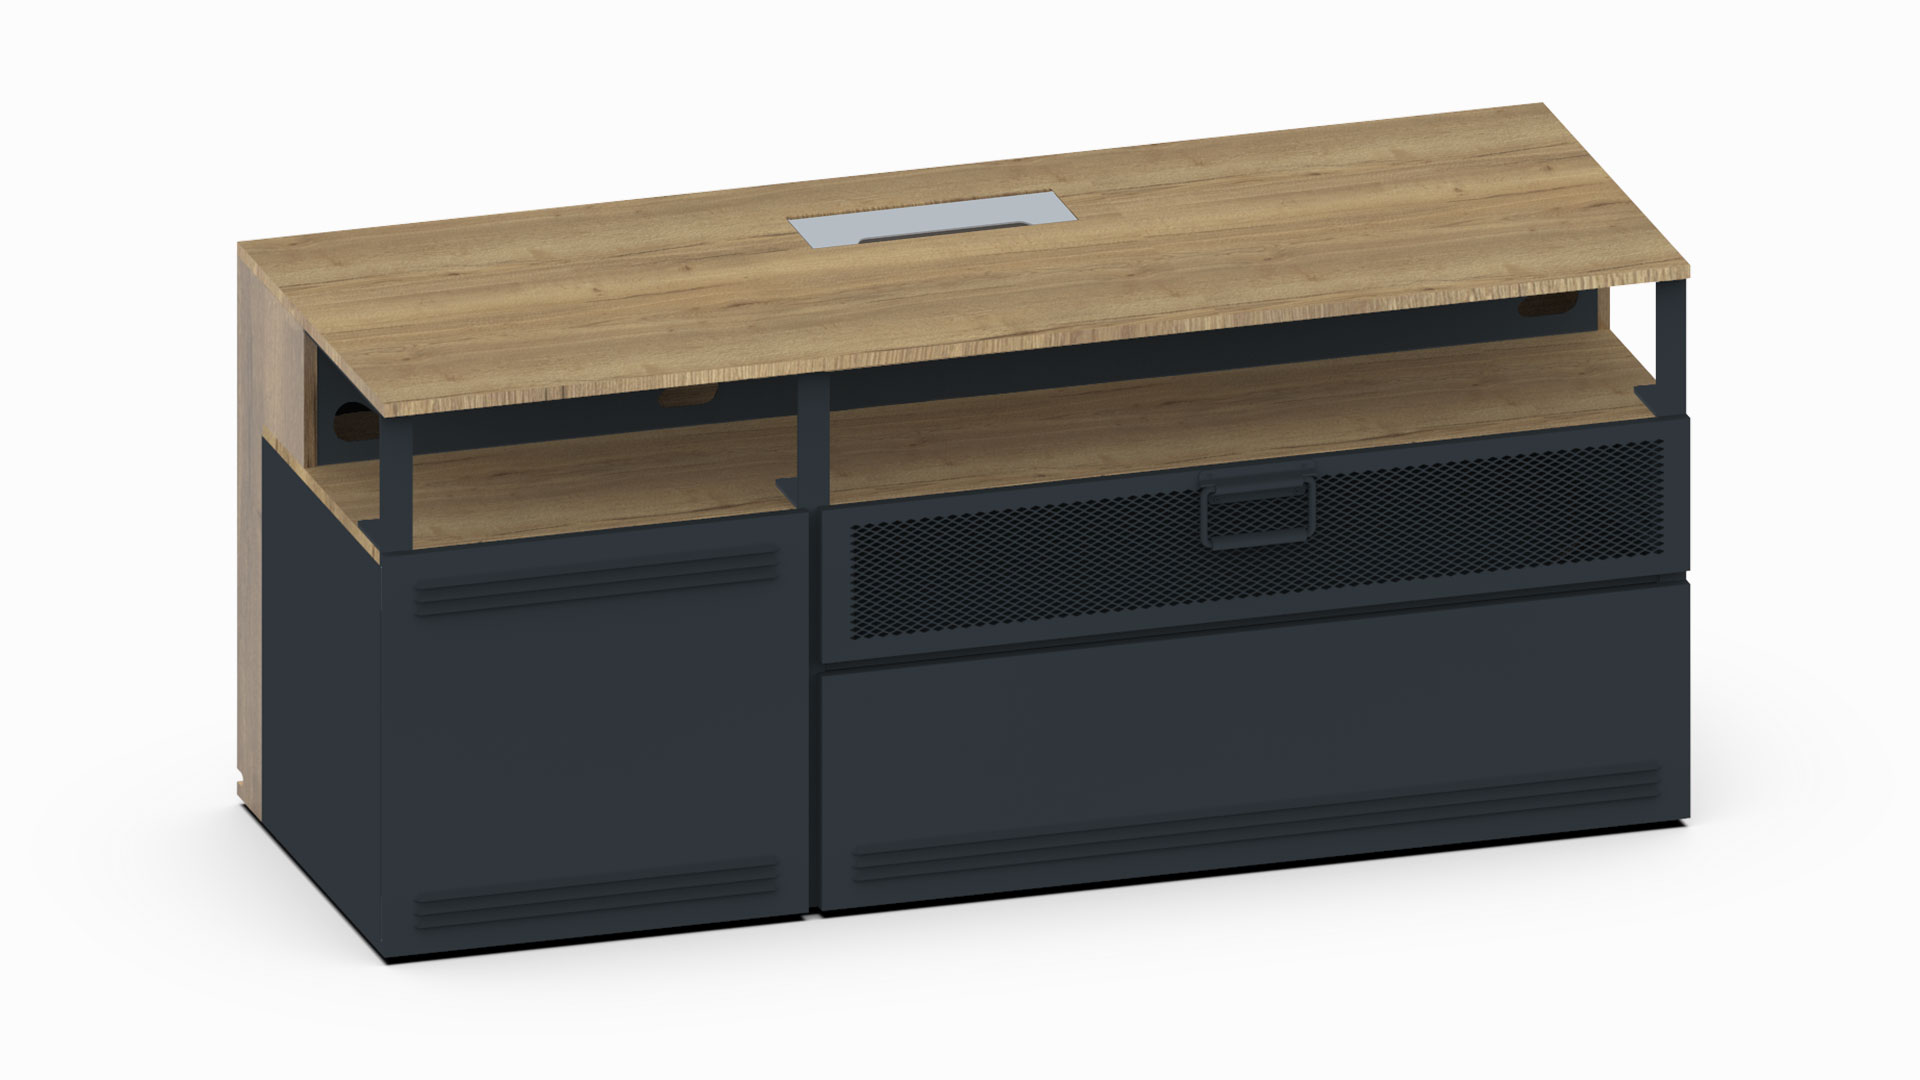 Design Industriel Meuble Meuble Industriel 150cm Geeko